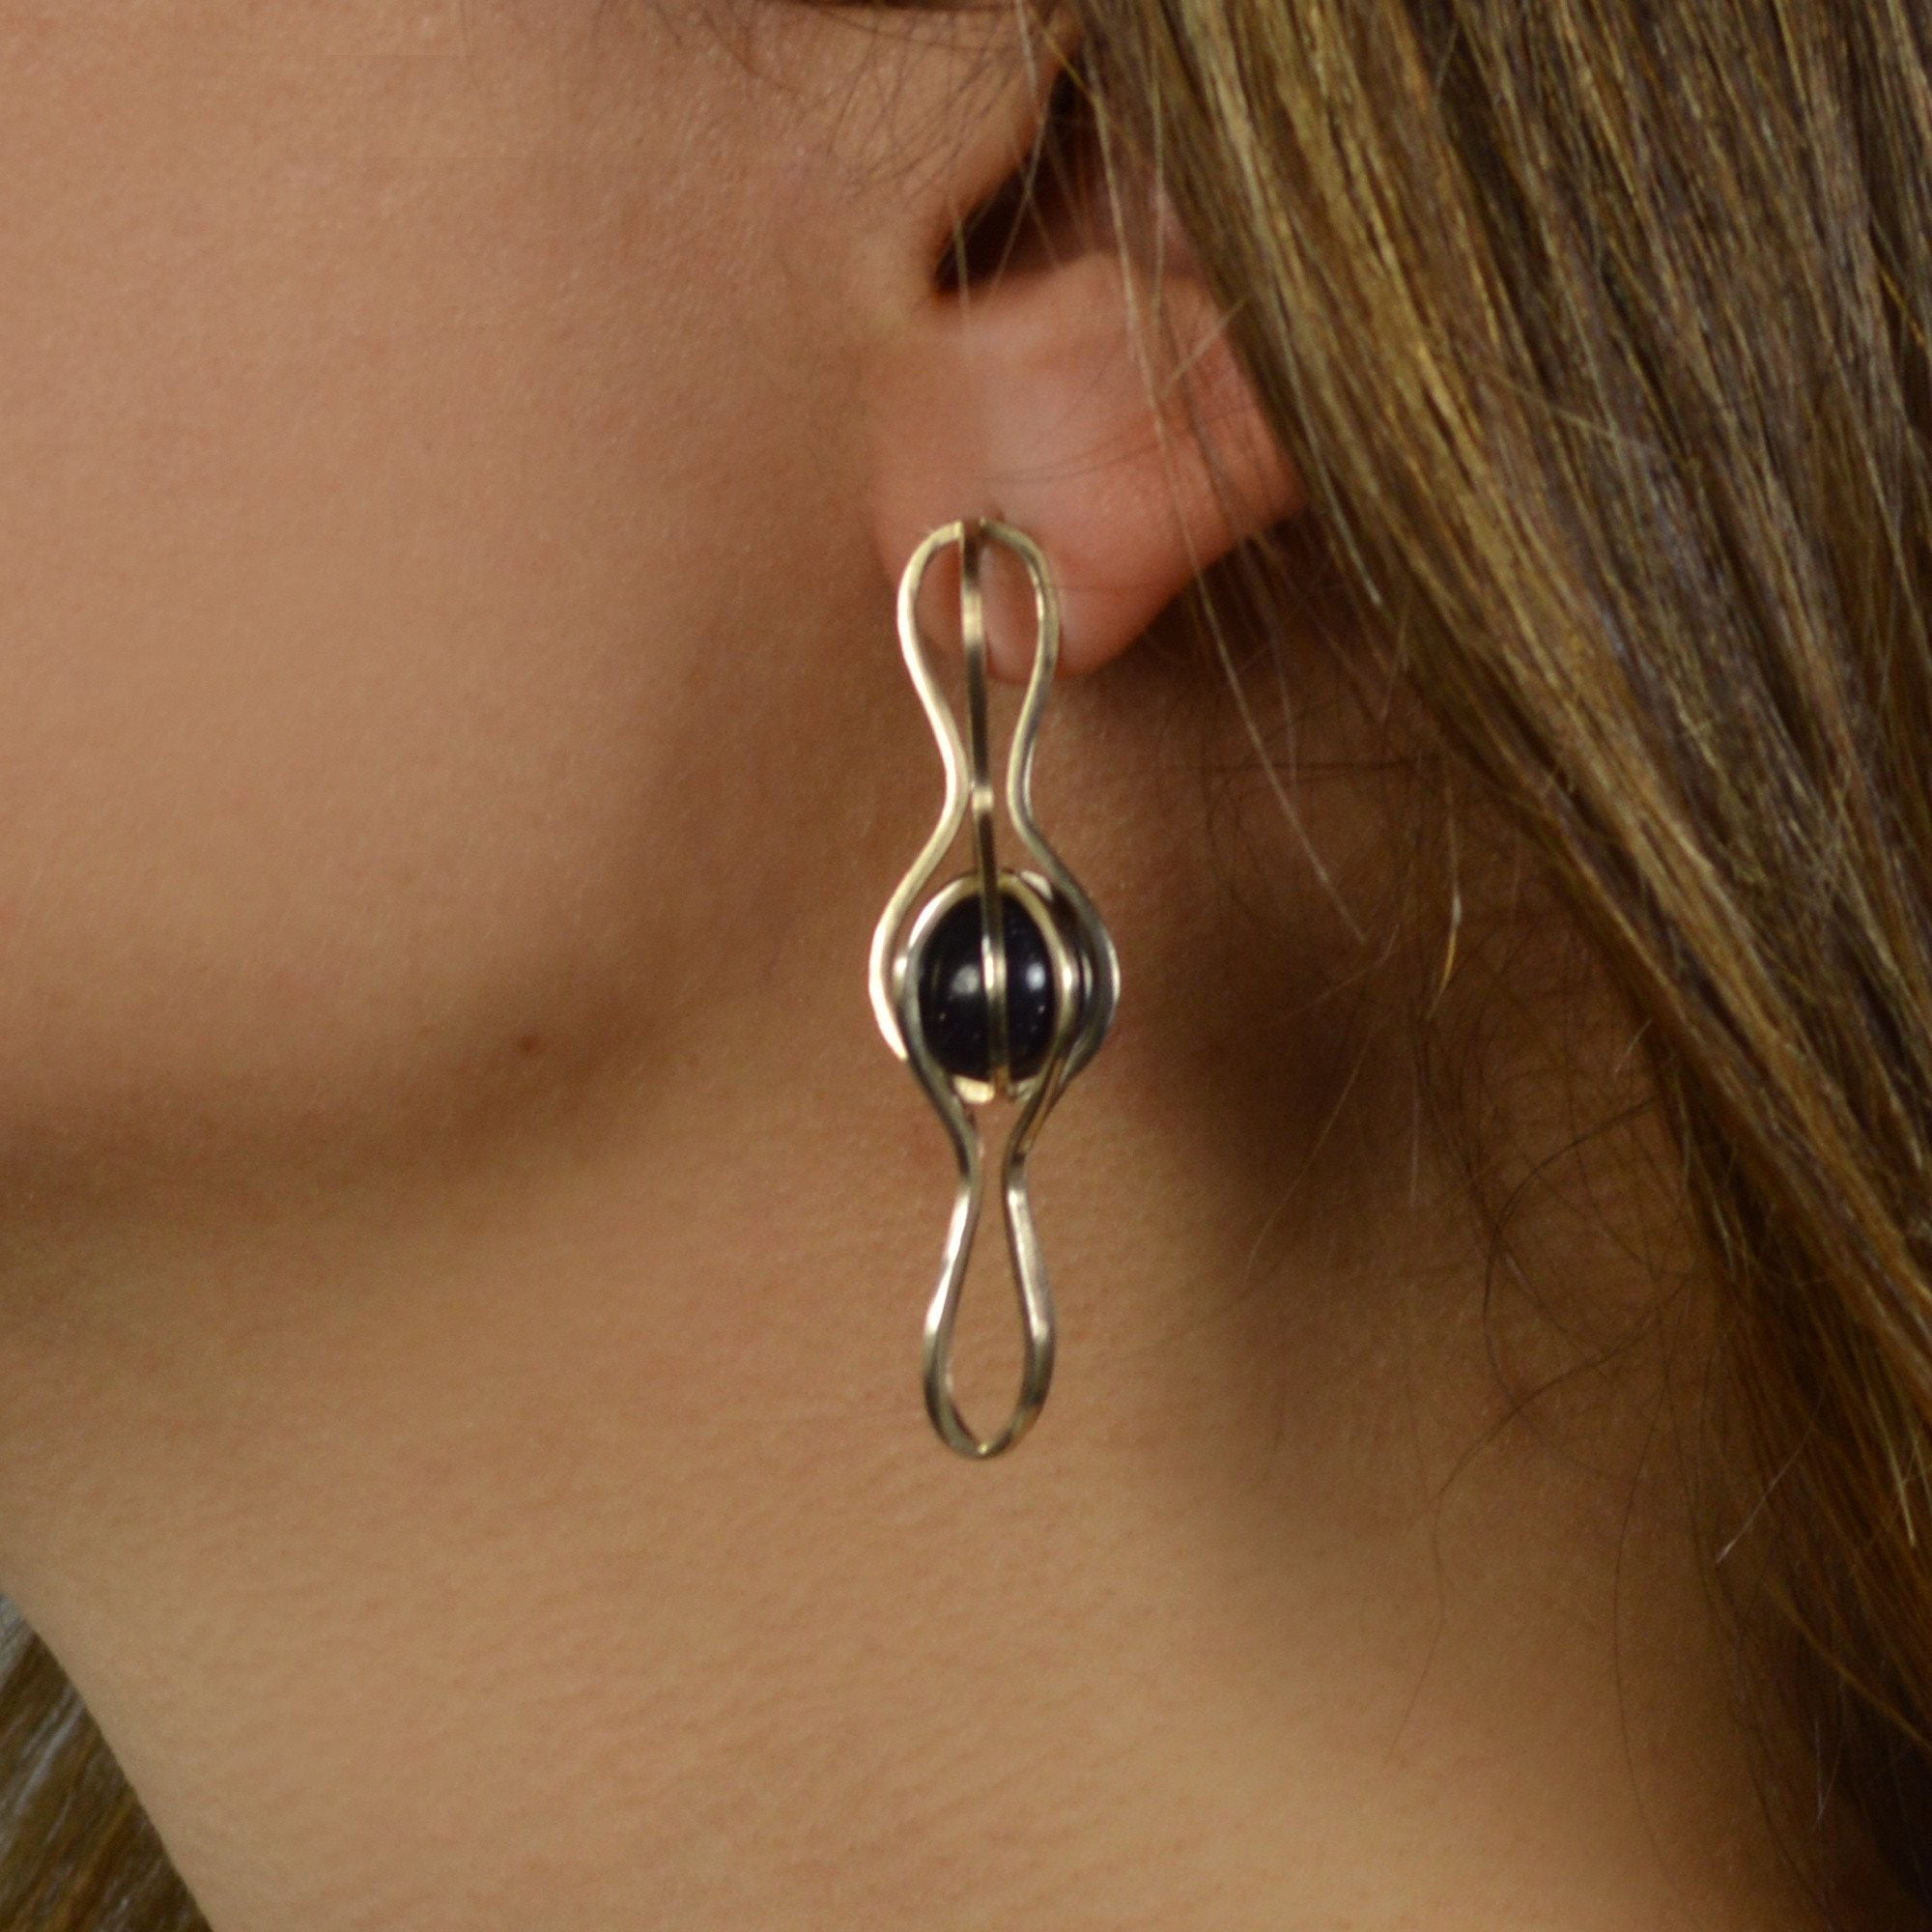 Infinite Orbit Earrings Capture the Starry Night